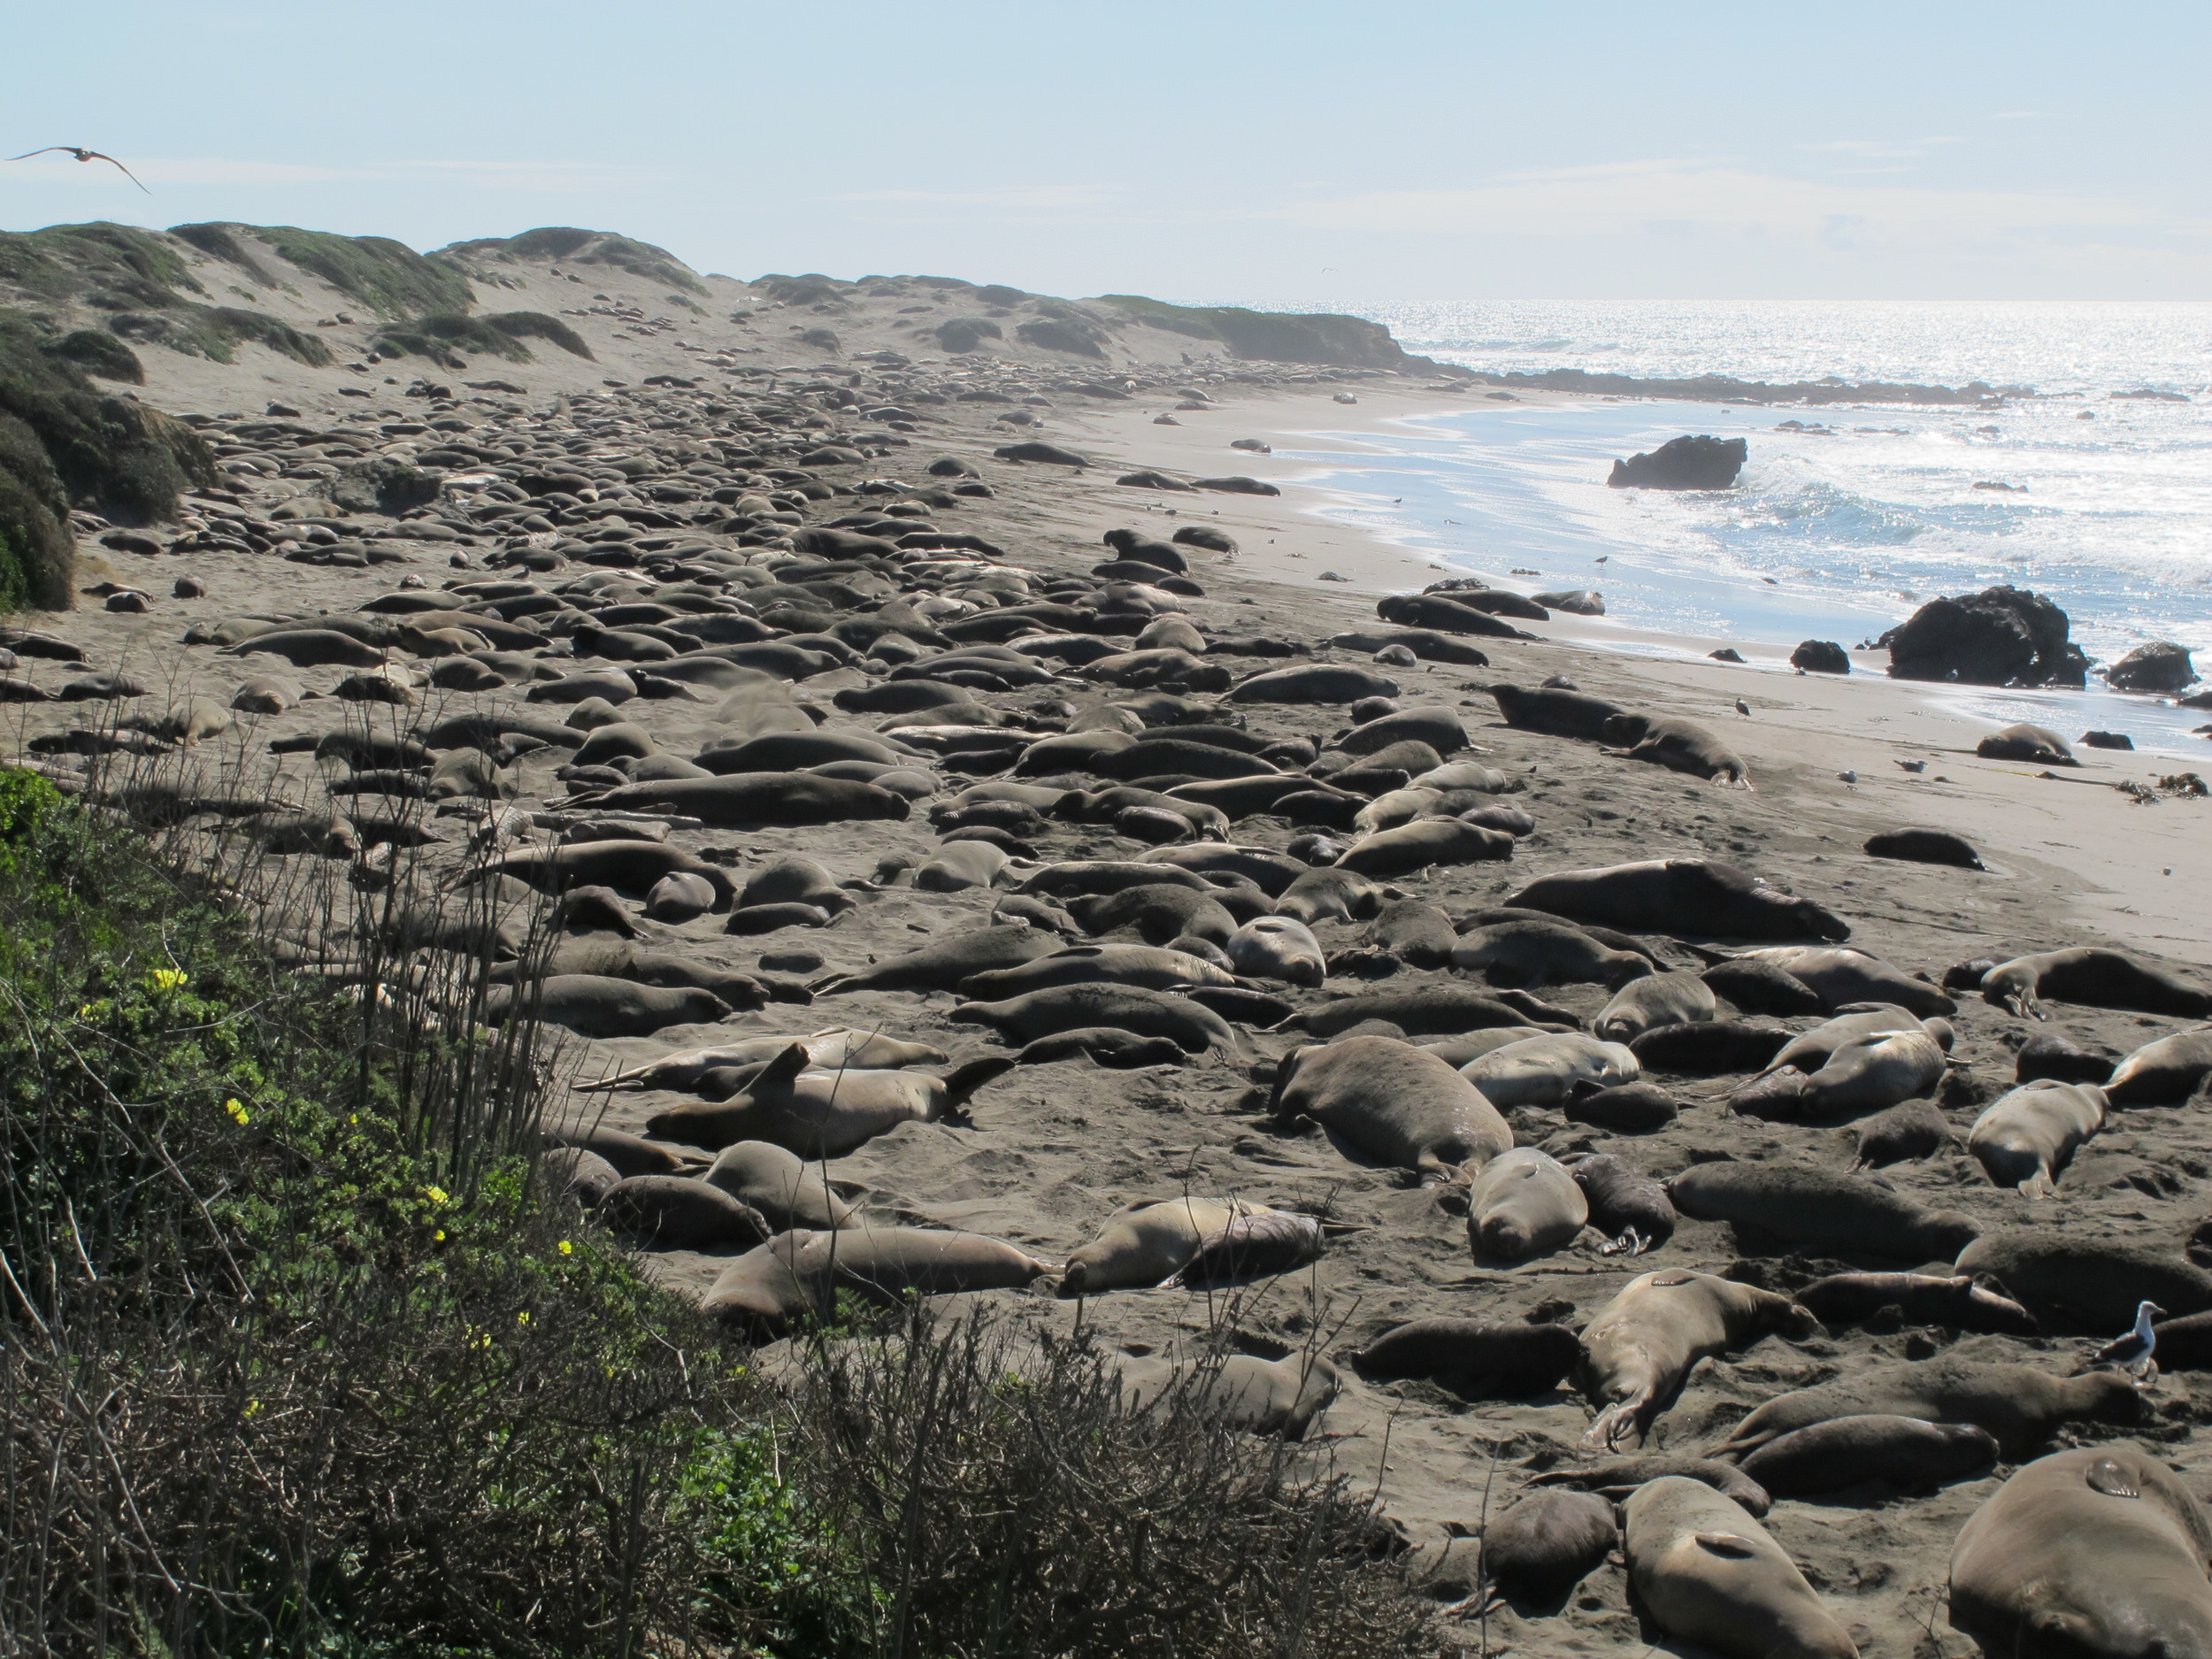 On a winter trip to California to meet with Notebook collaborators, we stopped at the elephant-seal rookery near Hearst Castle in San Simeon.